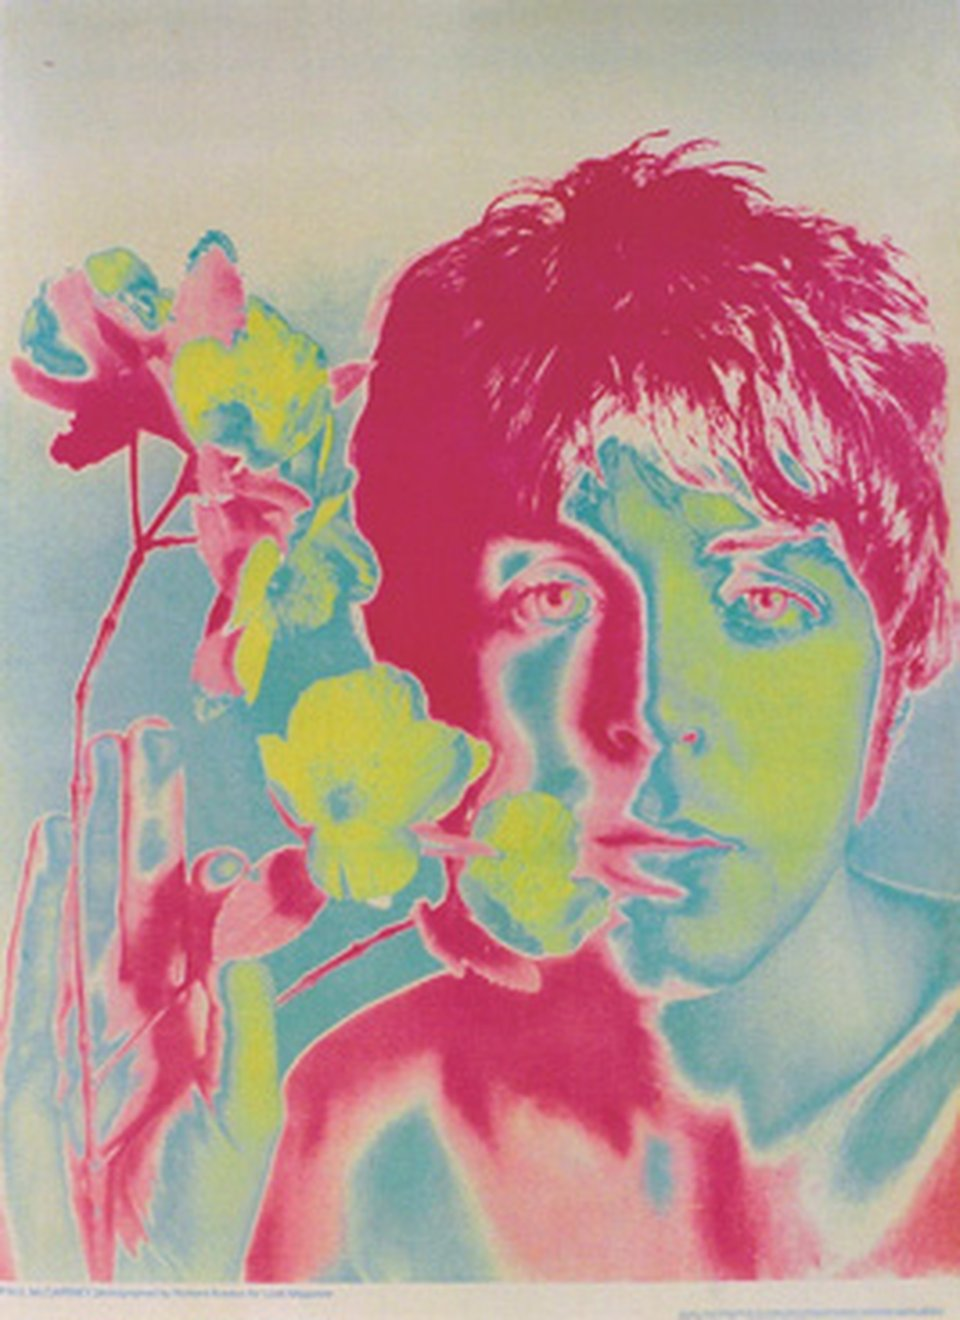 Paul Mc Cartney, Look Magazine – Vintage poster – Richard AVEDON – 1967